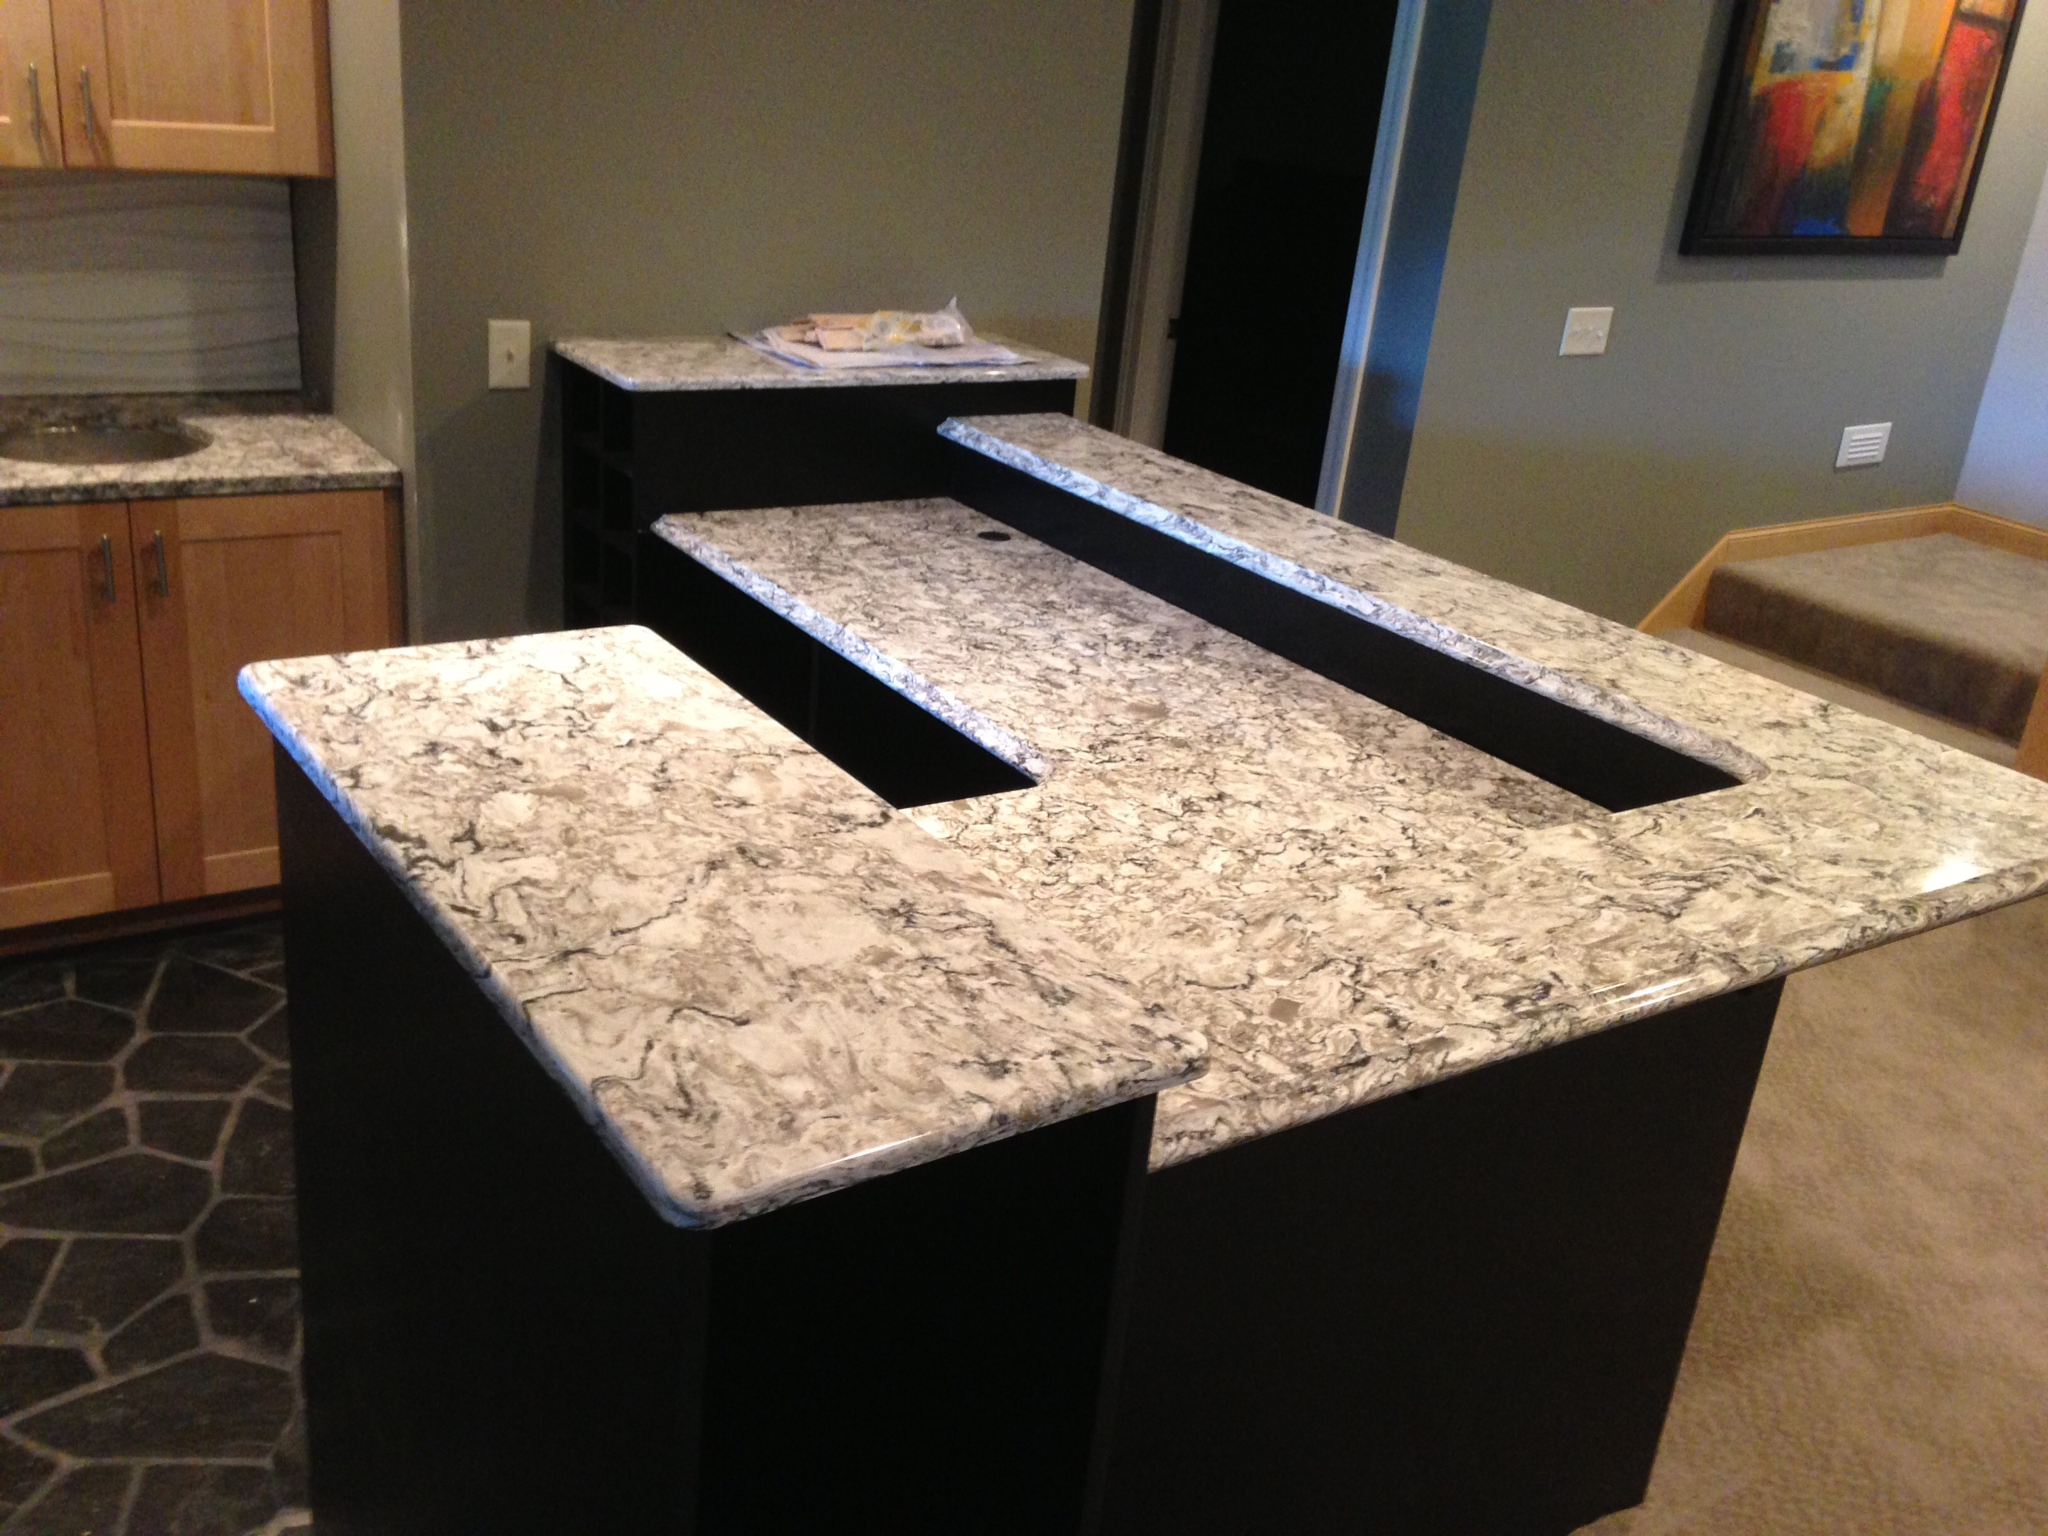 office m granite countertops haala c llc countertop cambria quartz statement and installation cabinets bellingham